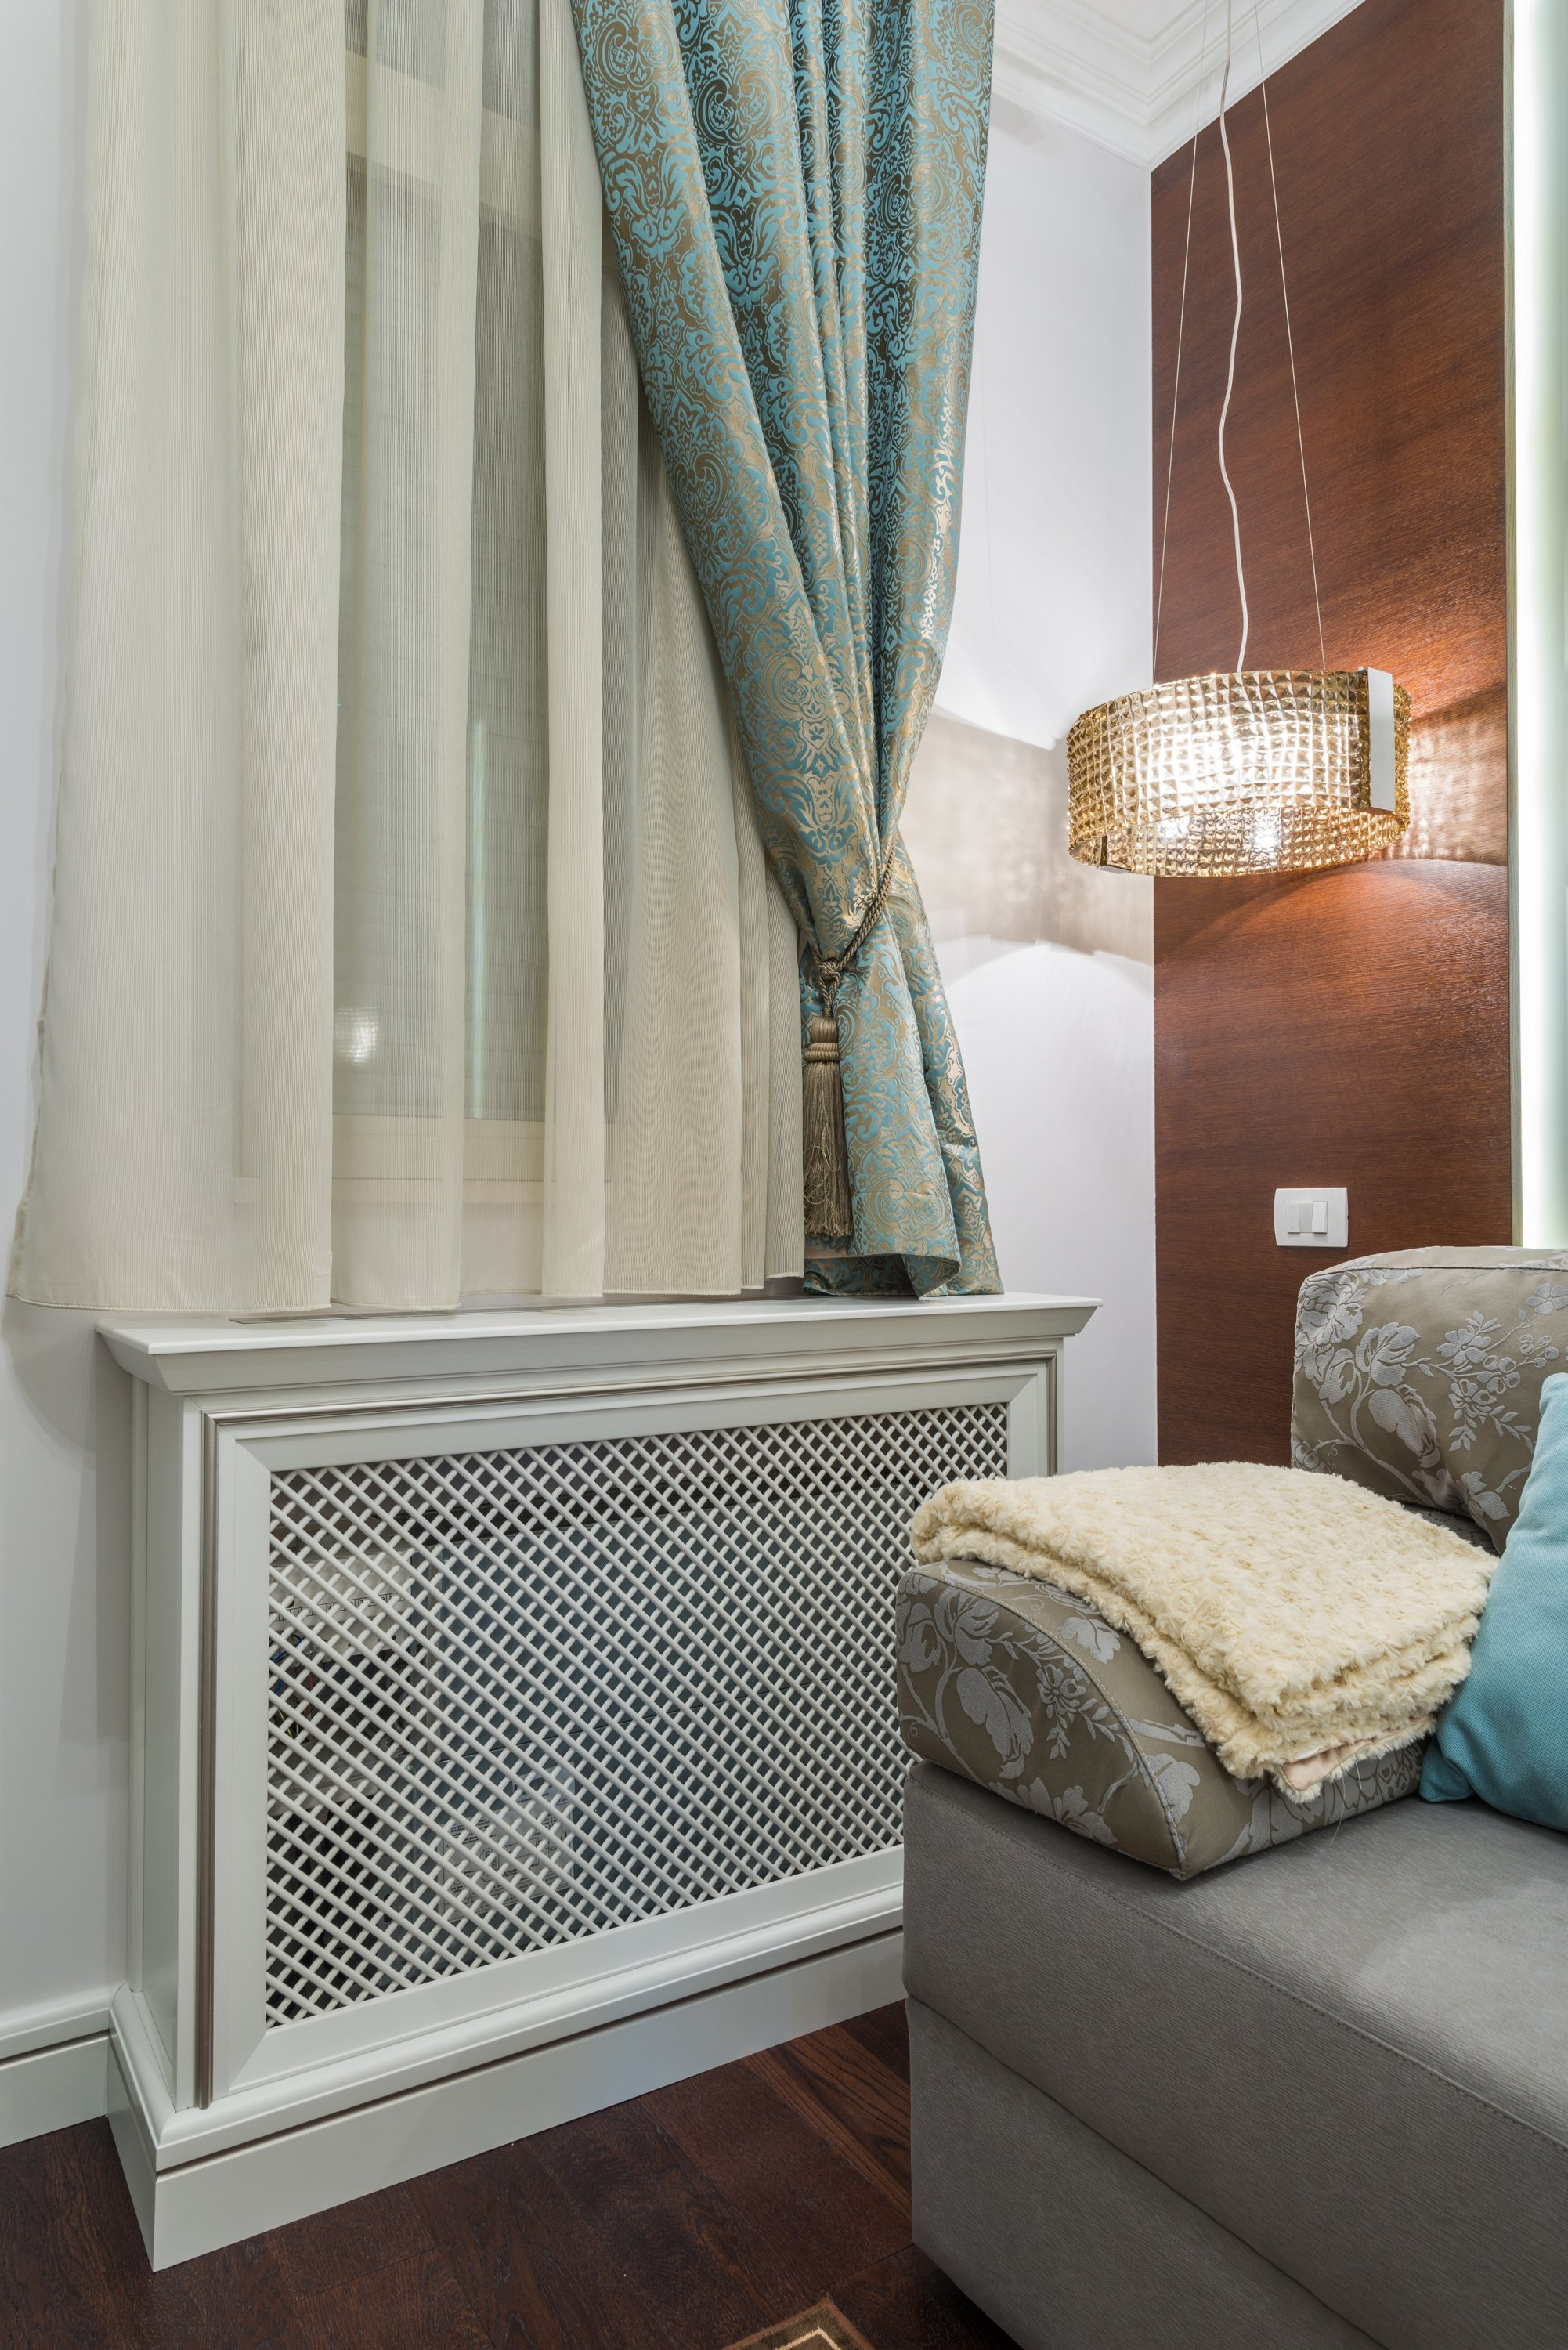 Wood is the most common choice for radiator covers. (Shutterstock Photo)